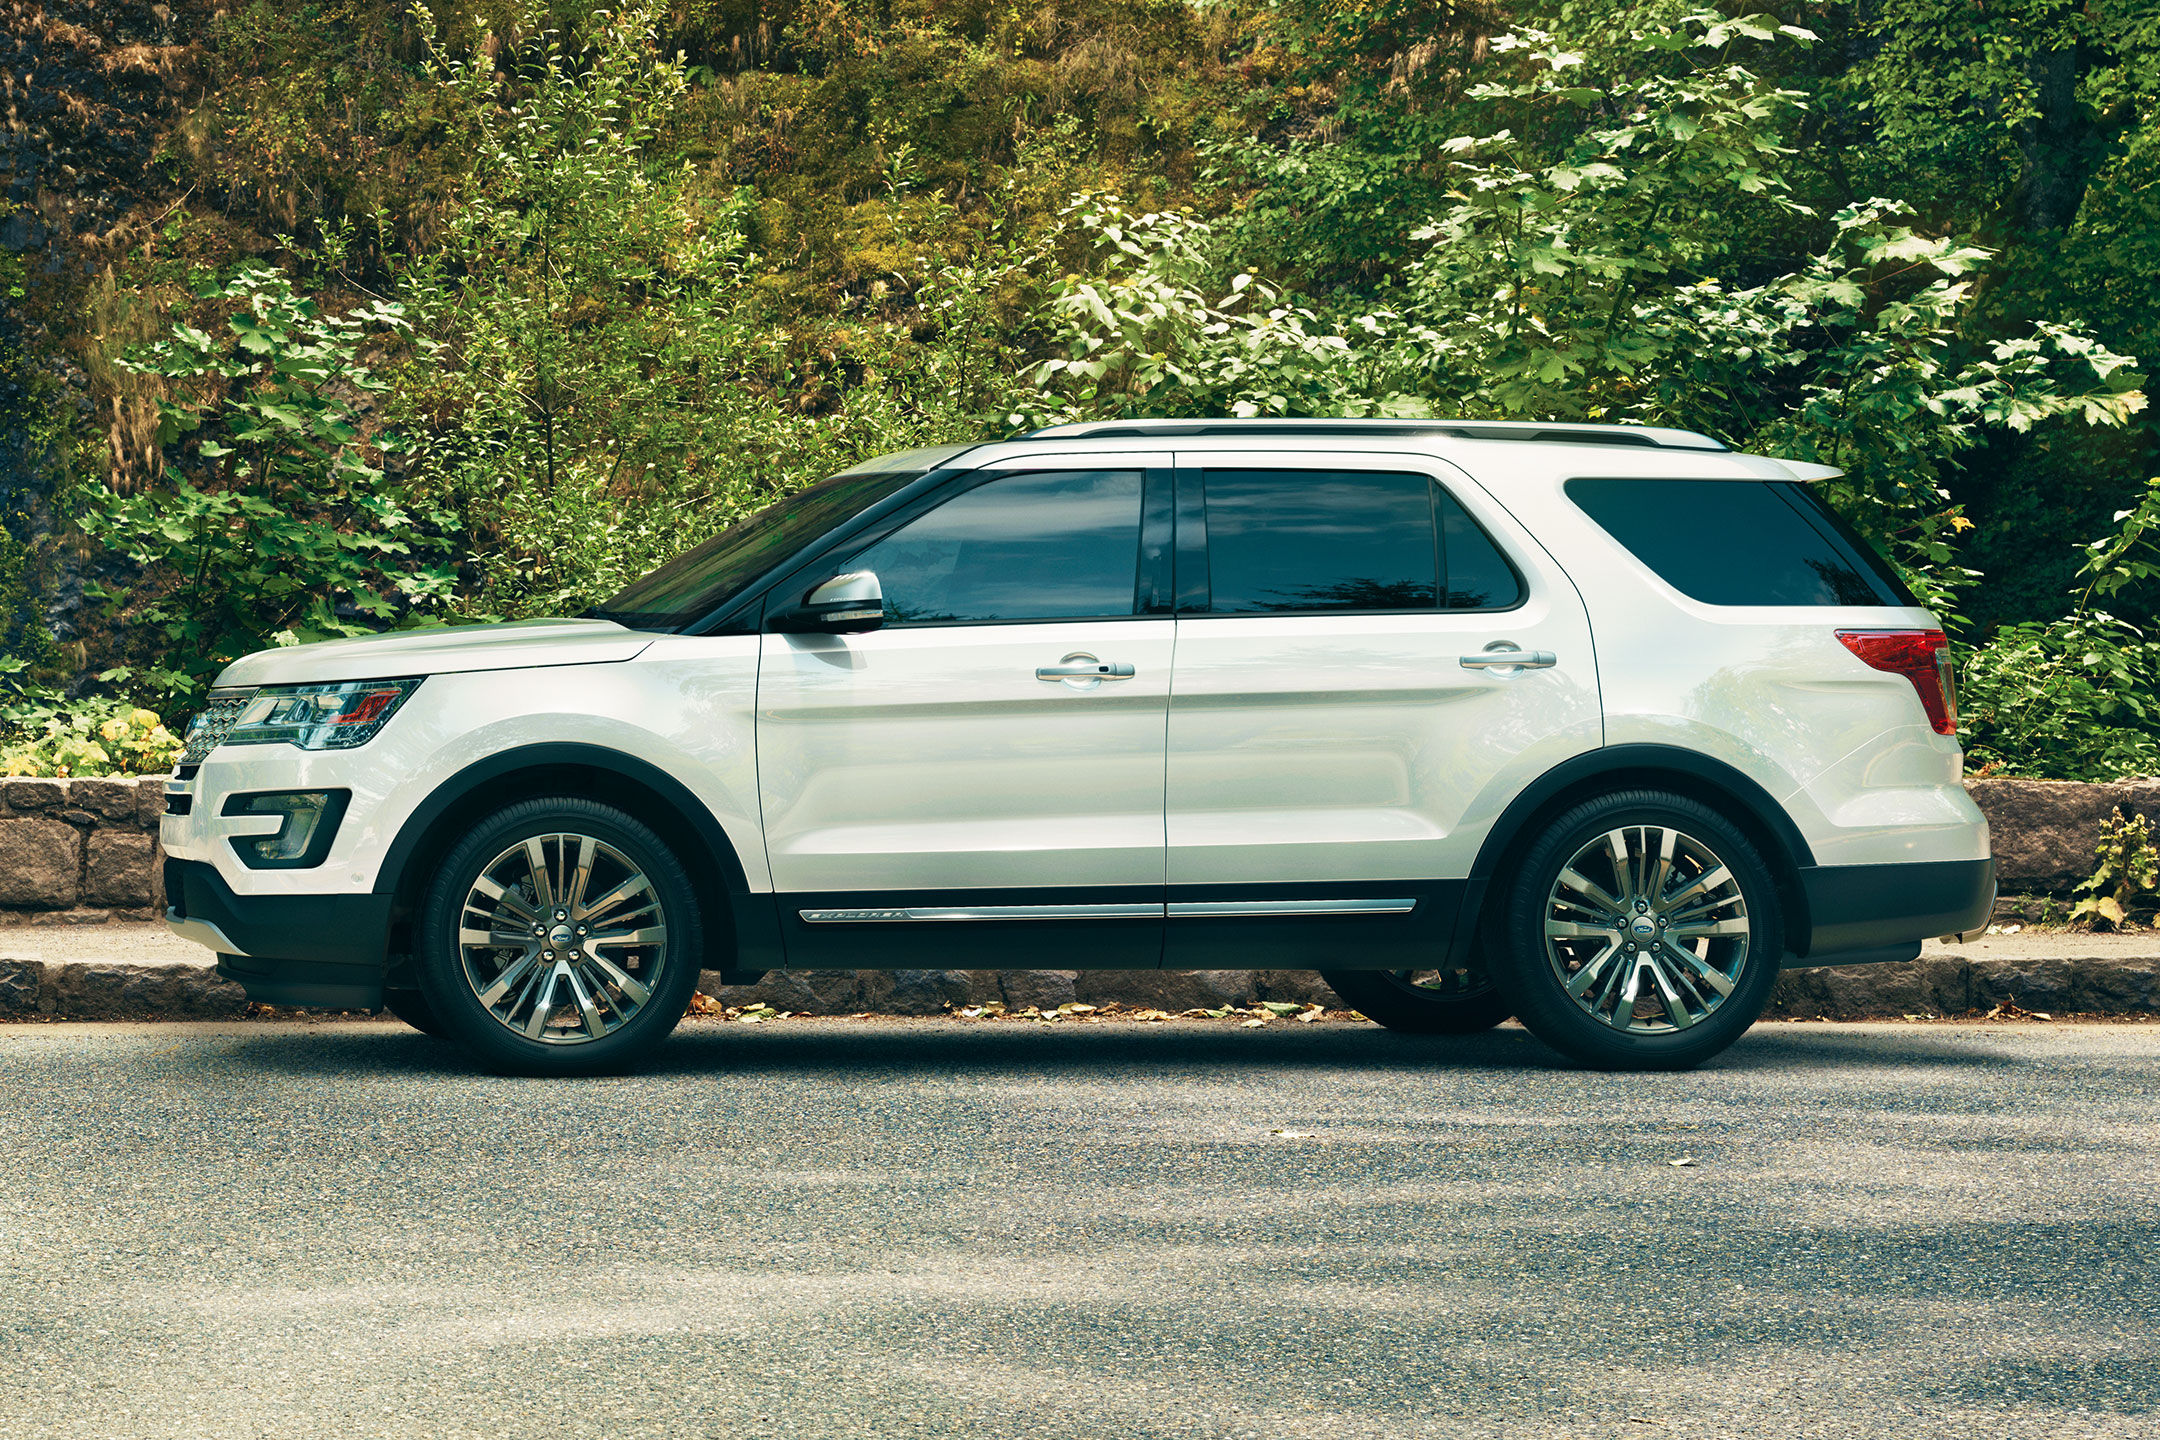 2017 Ford Explorer Overview | The News Wheel